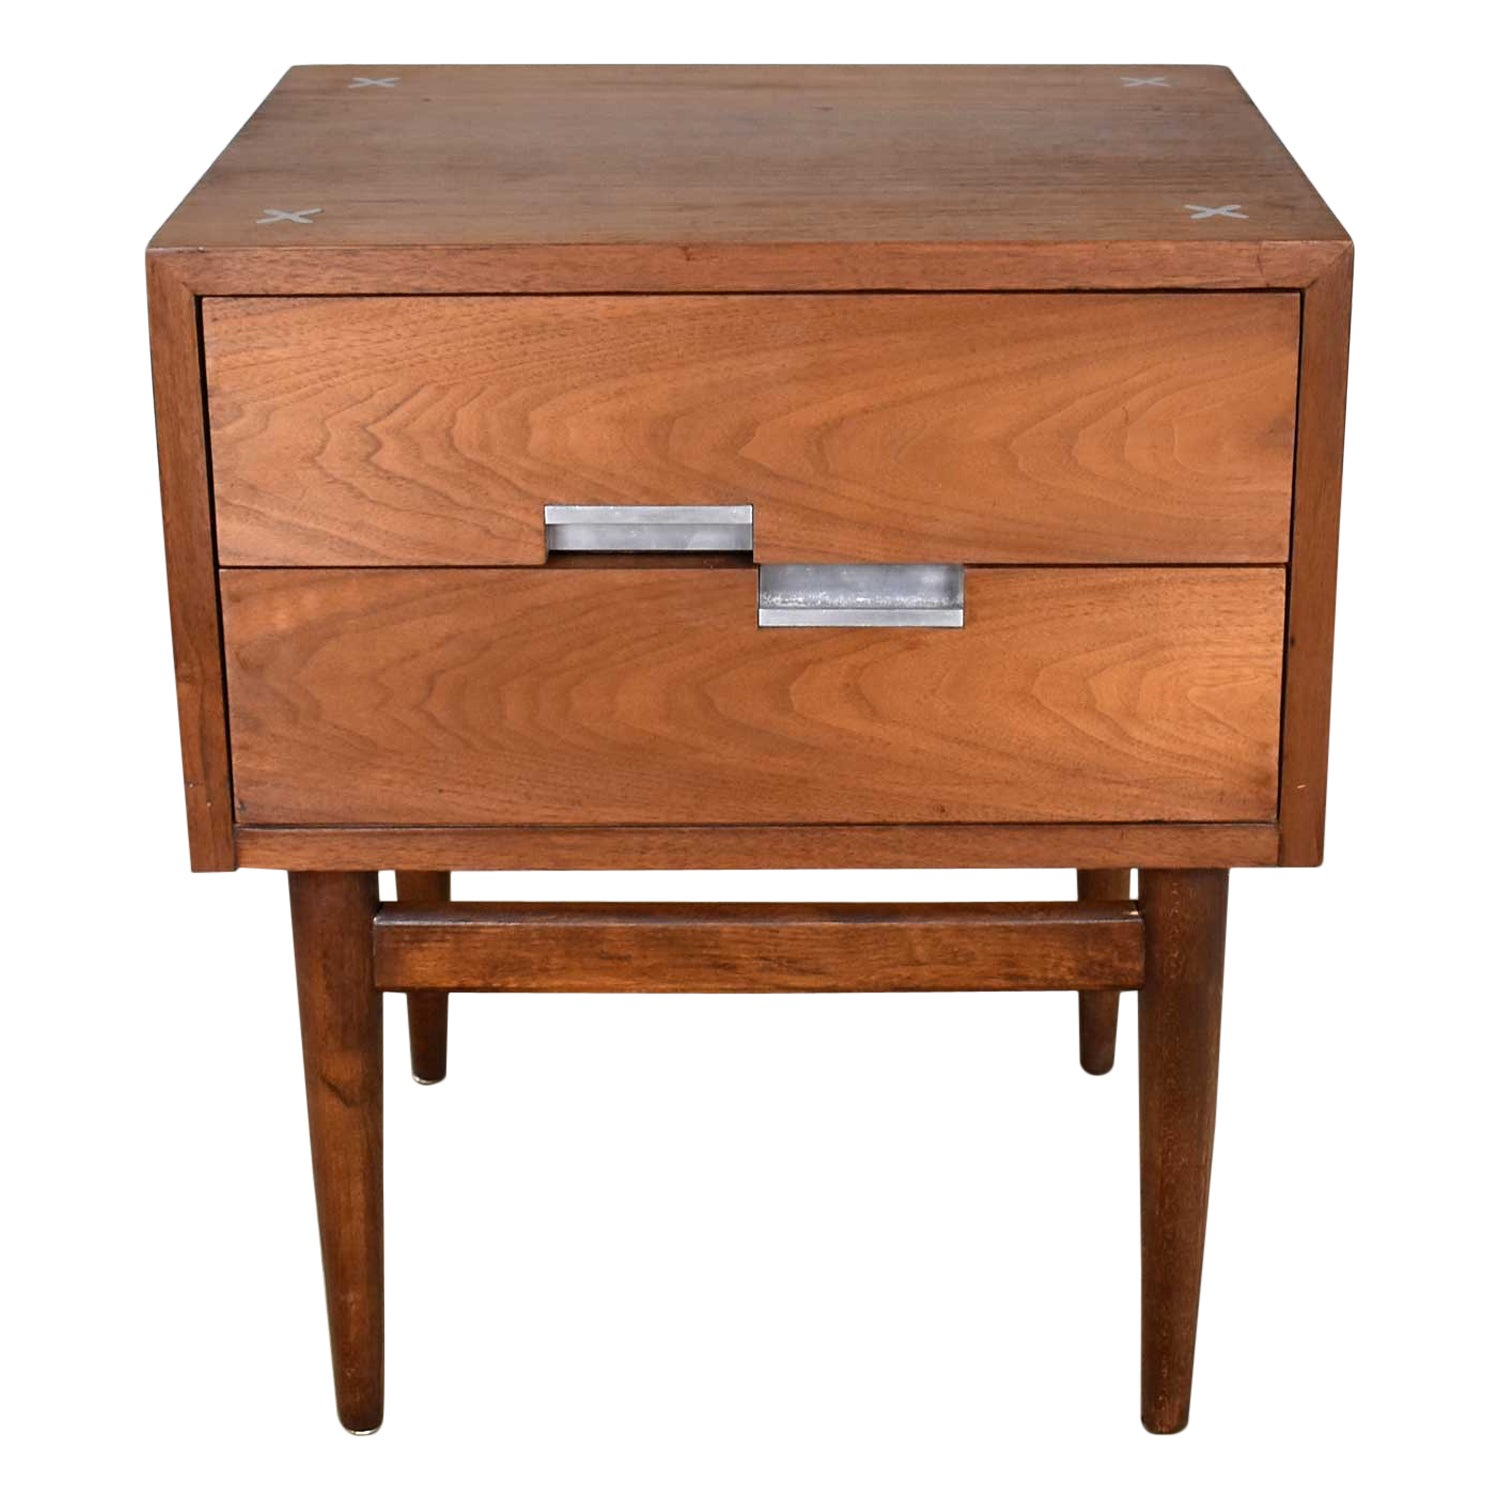 American of Martinsville Accord Walnut Nightstand or End Table with X's